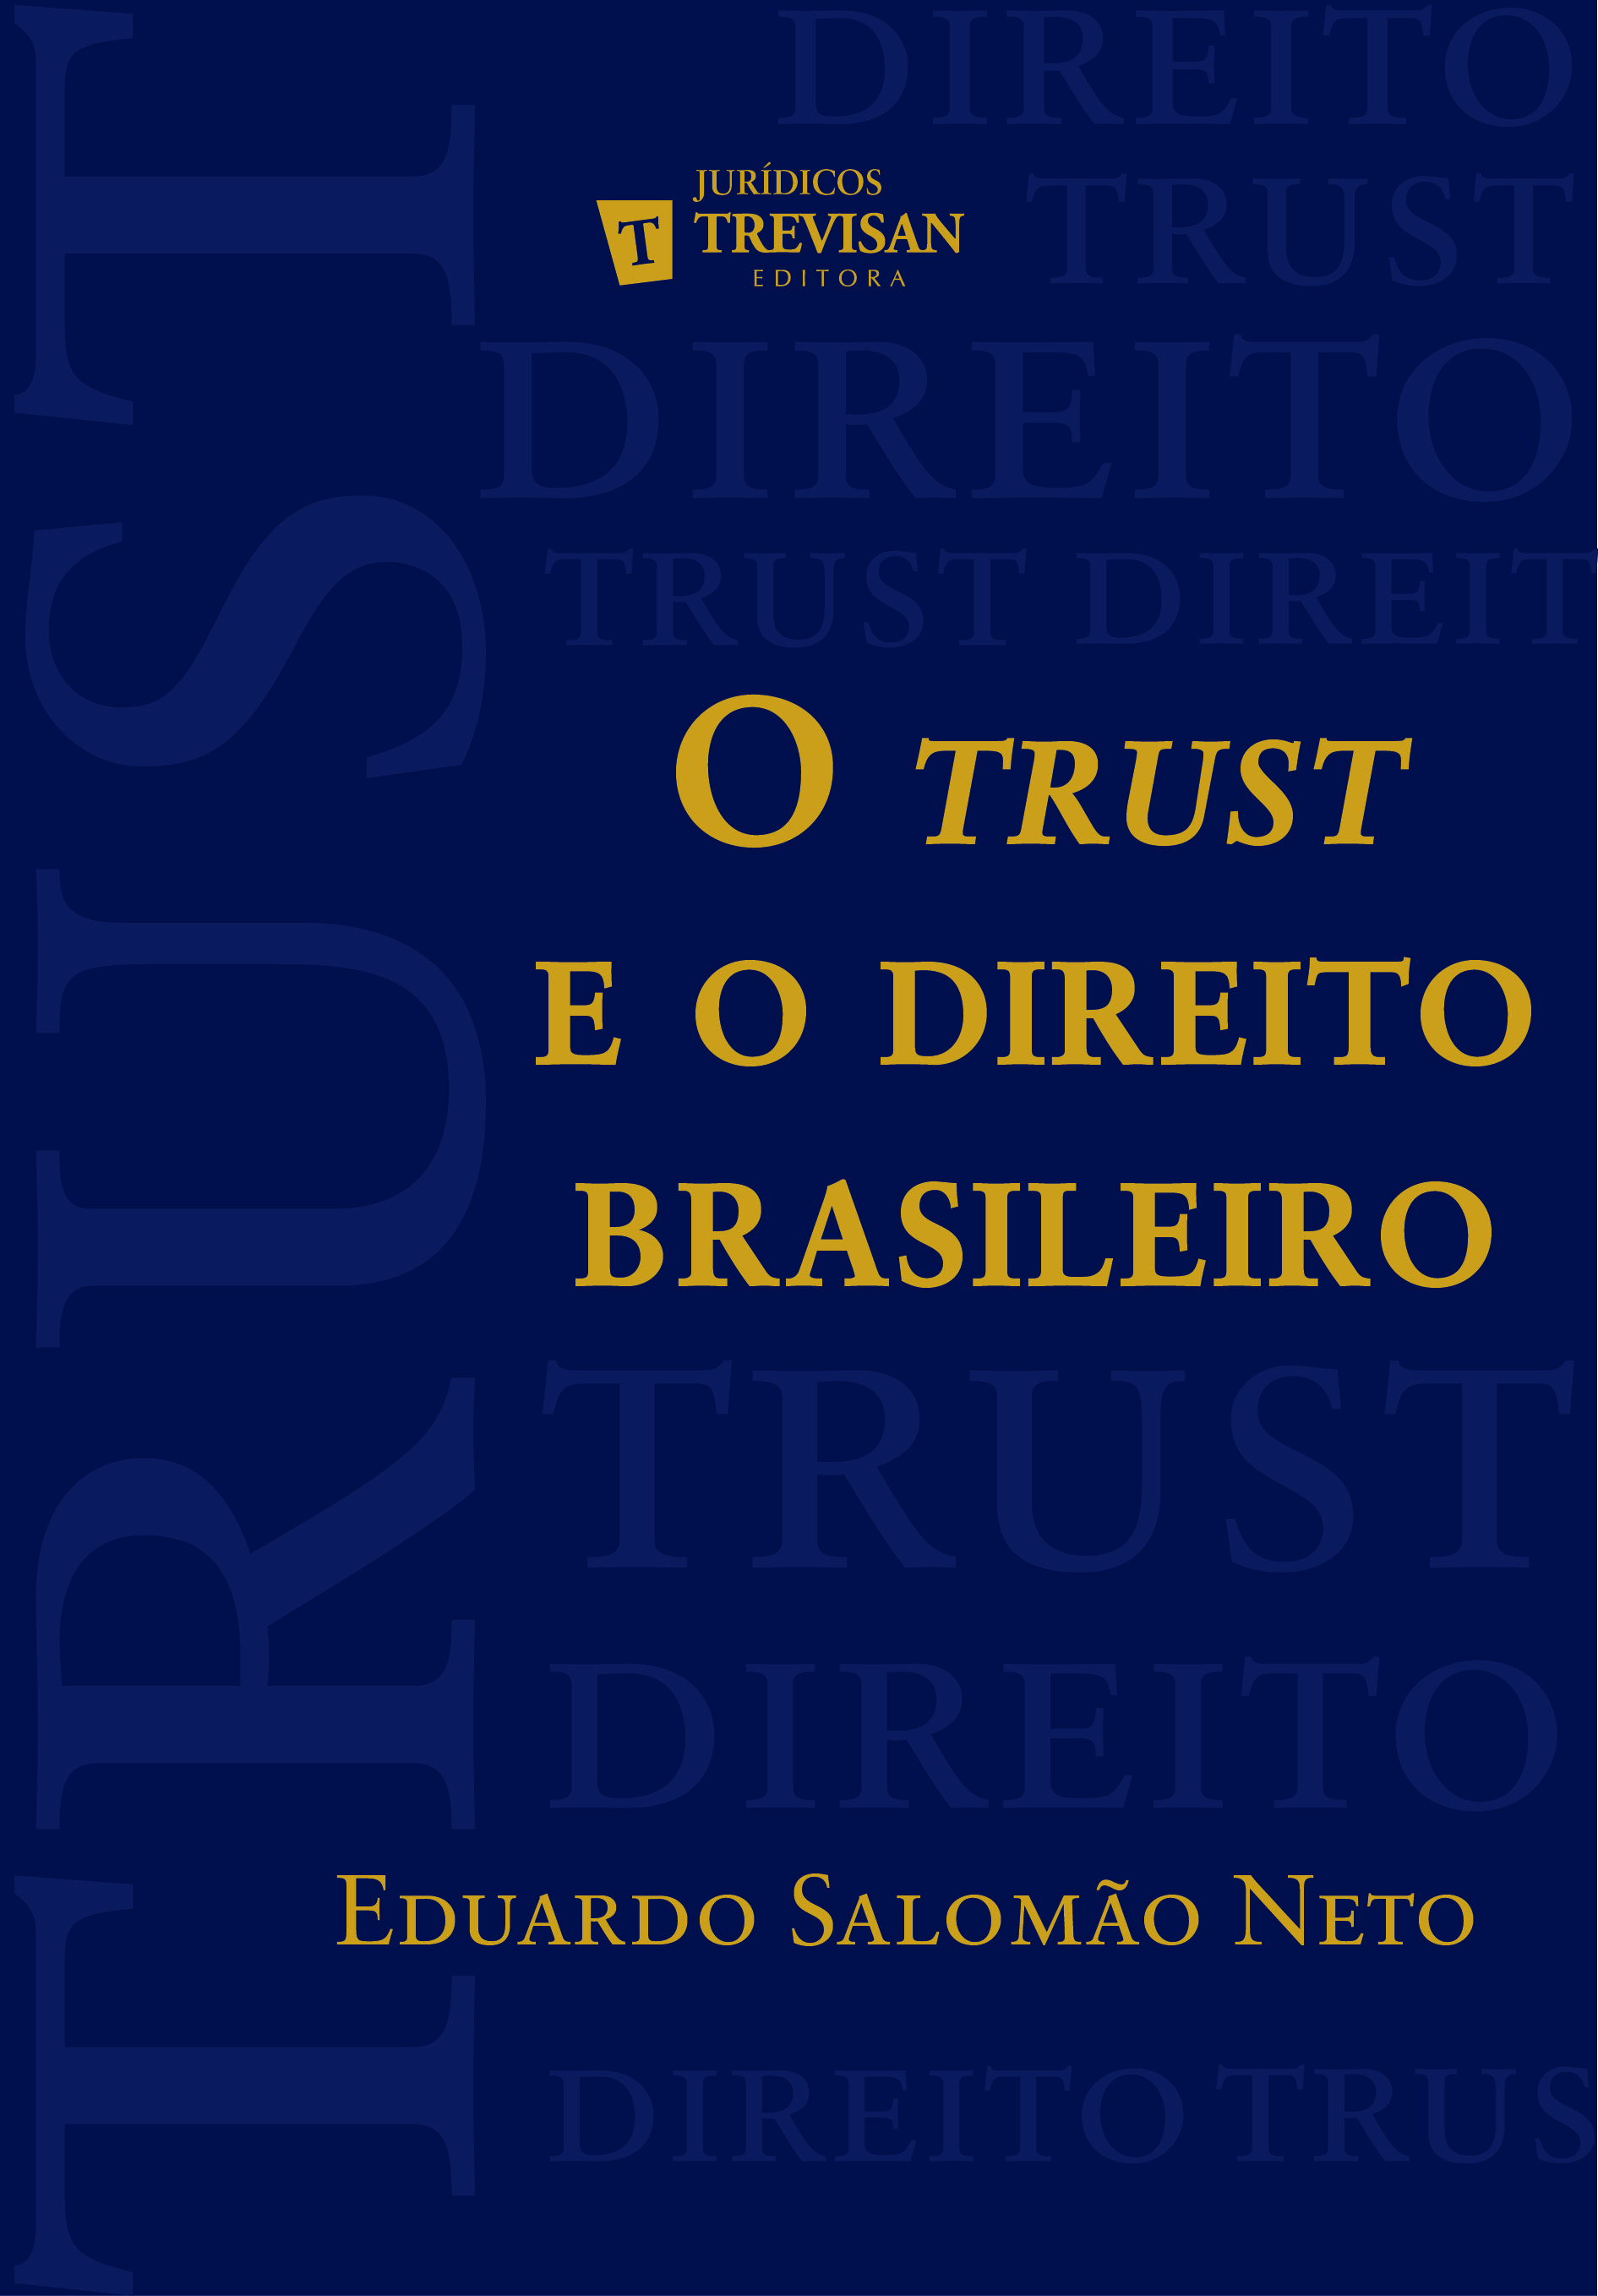 O trust e o direito brasileiro